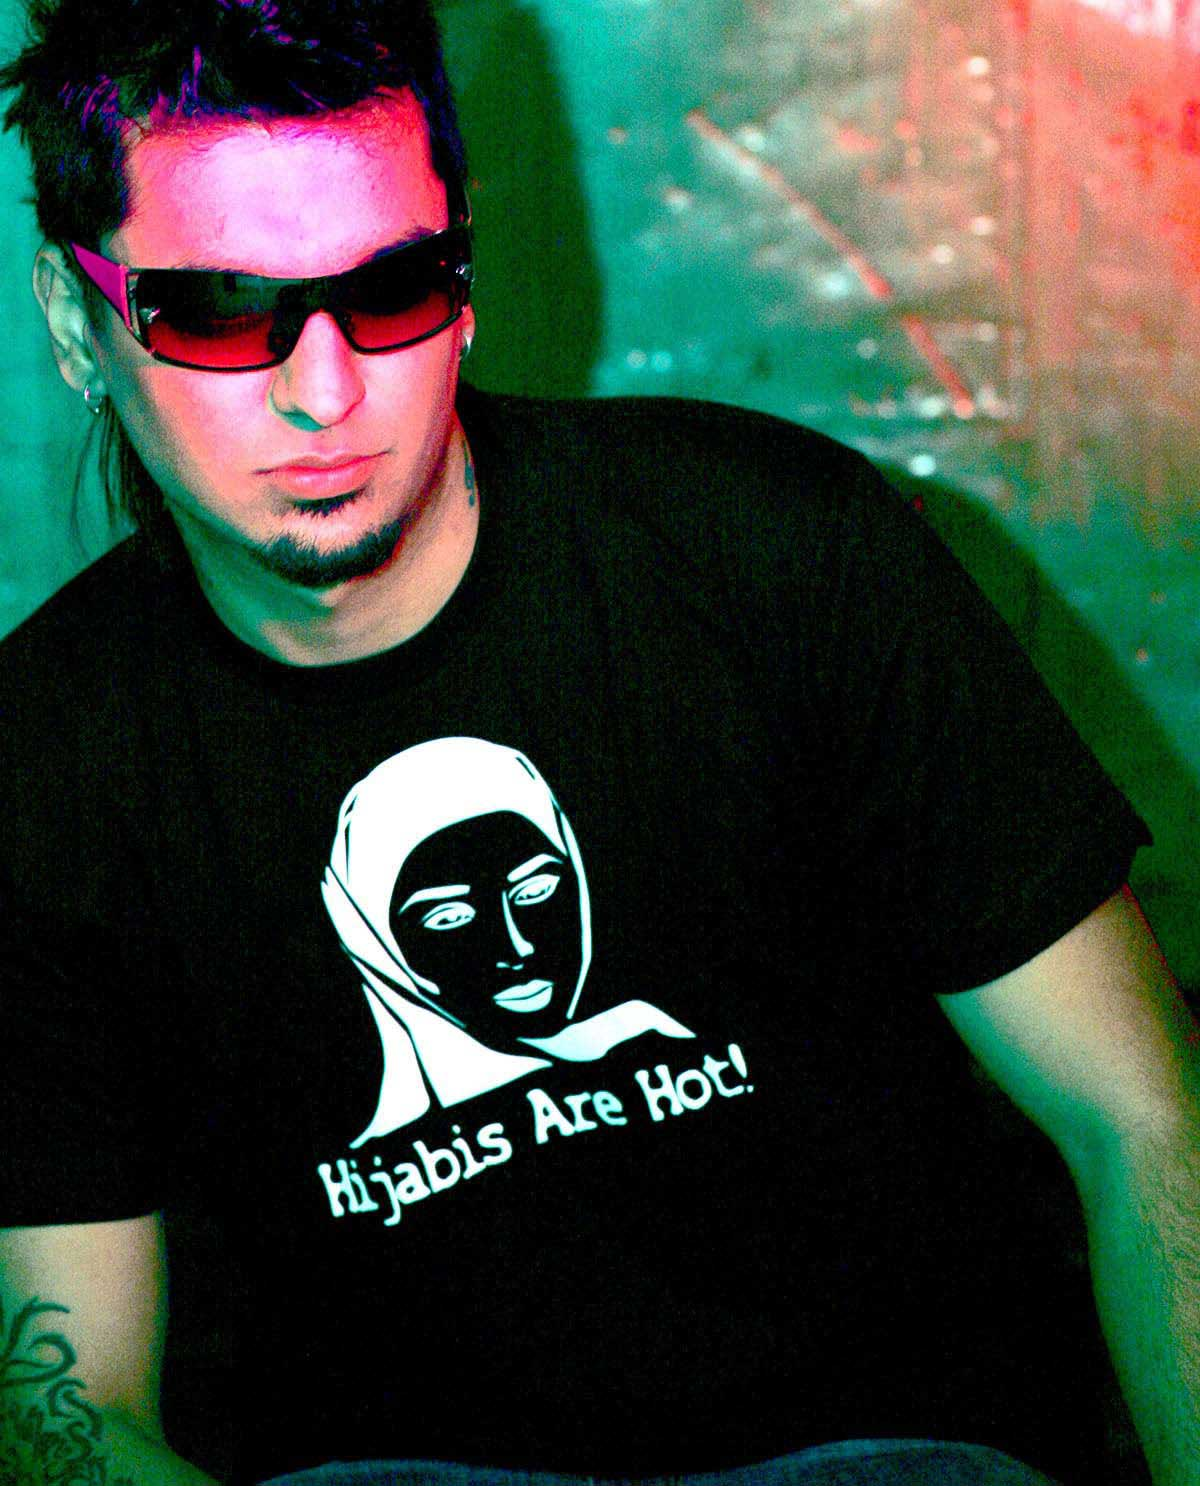 South Asian Male model wearing Black American Apparel tshirt with white graphic design image on front that says Hijabis Are Hot!